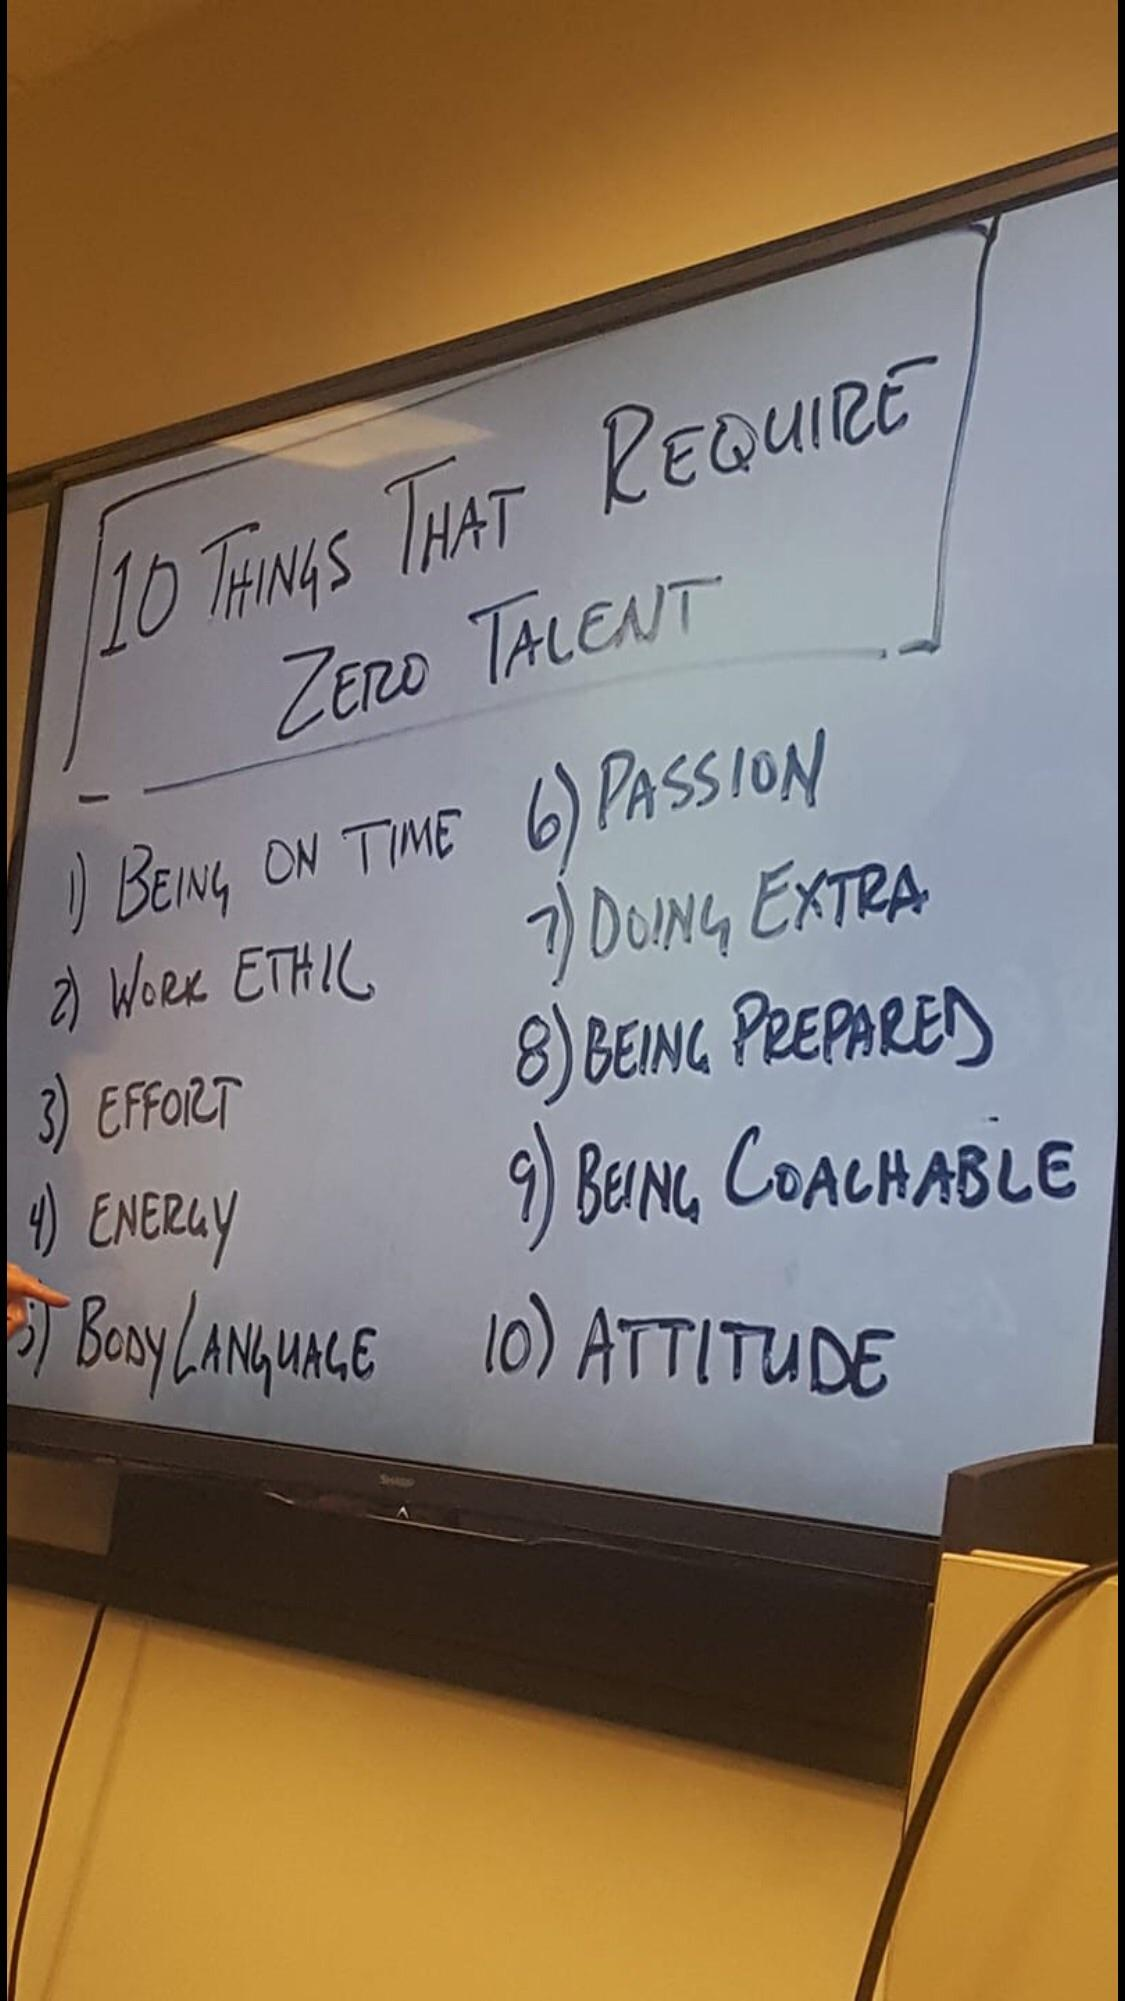 [Image] 10 Things That Require Zero Talent